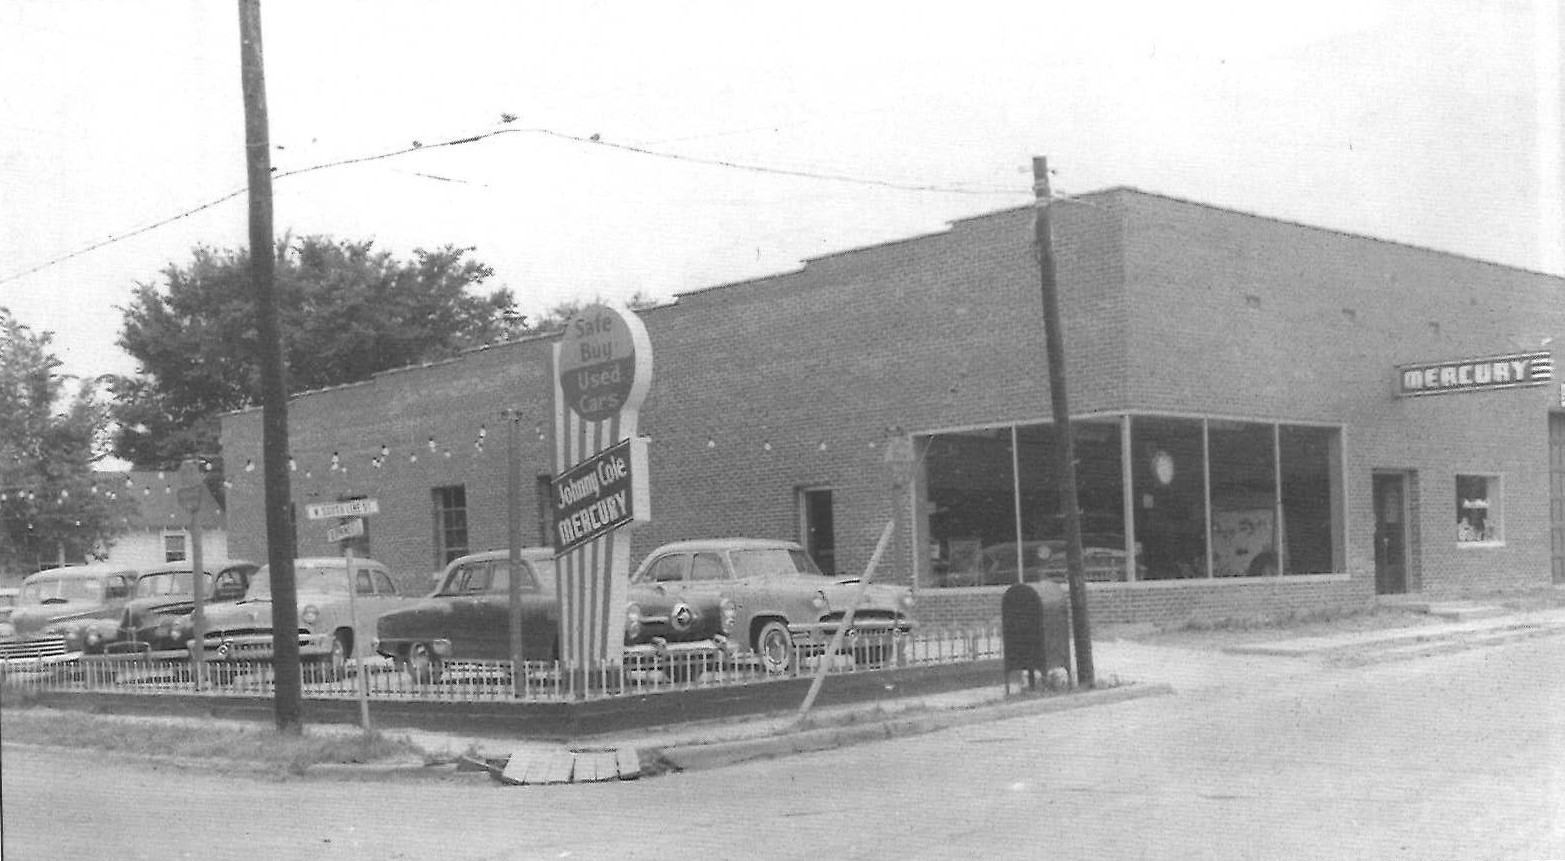 Mercury Dealership 1952 location Searcy AR Woodruff and Spring